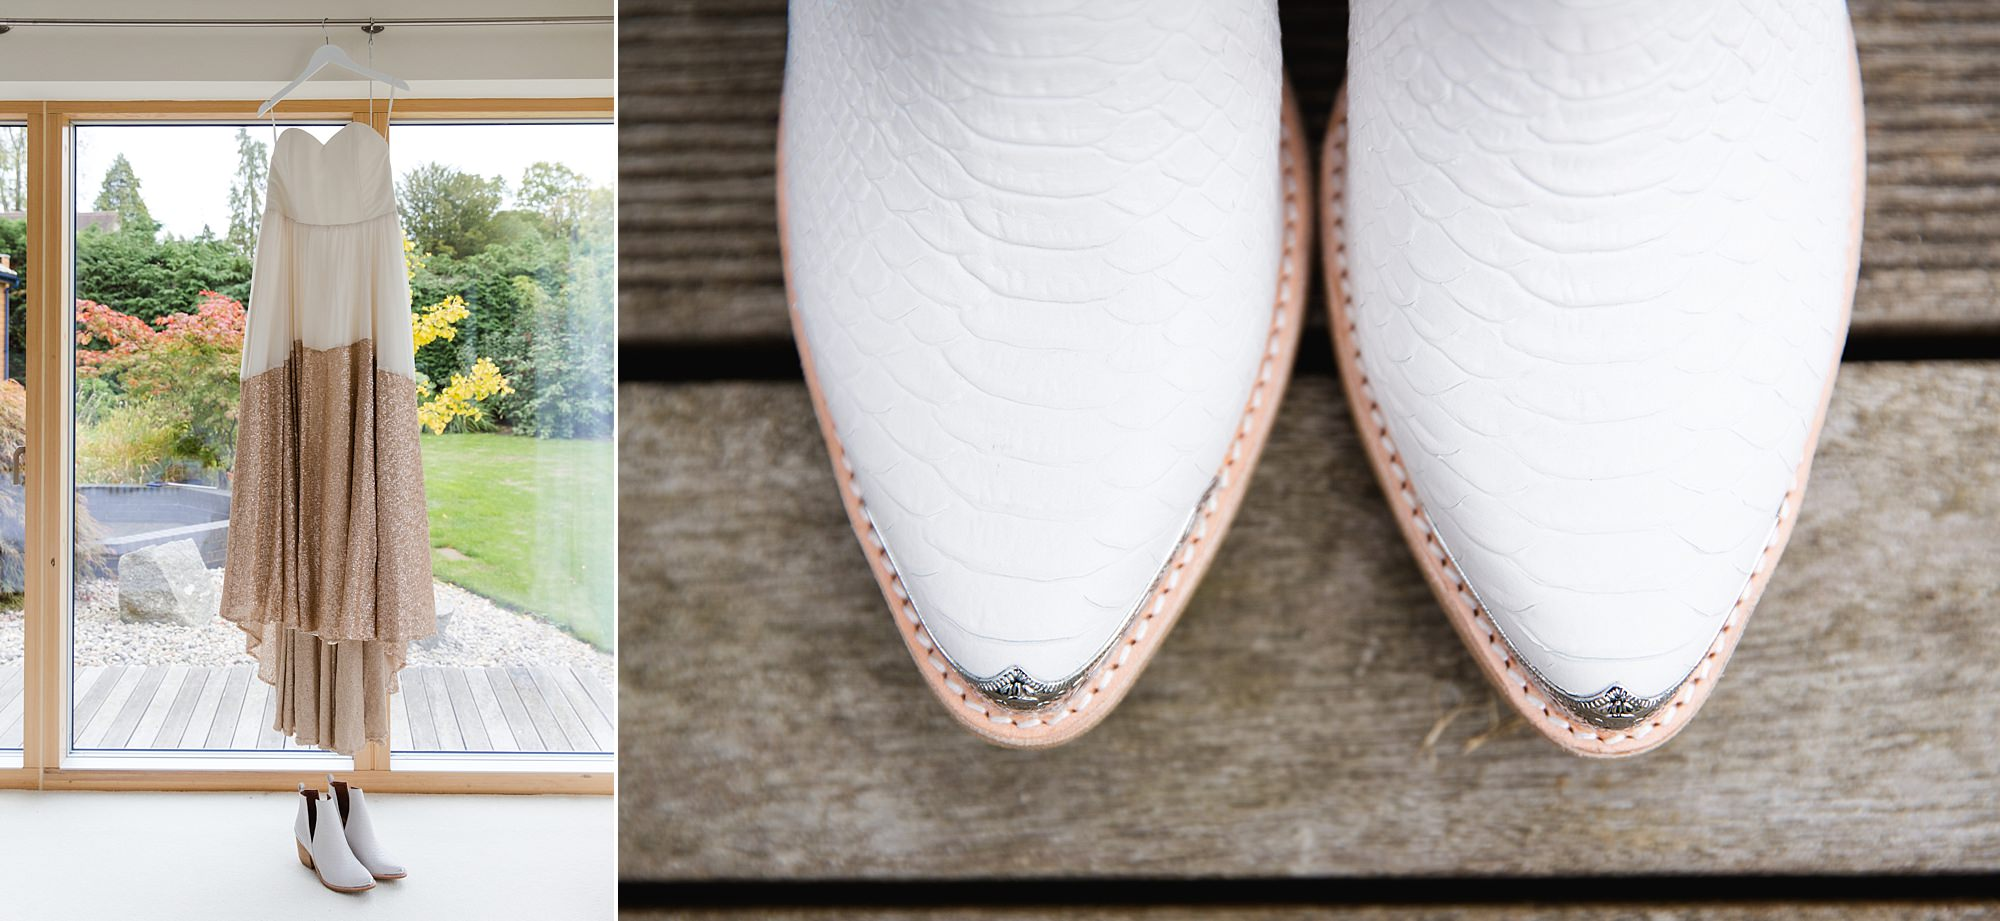 Fun London Wedding brixton a bride's wedding dress hung up with her wedding shoes